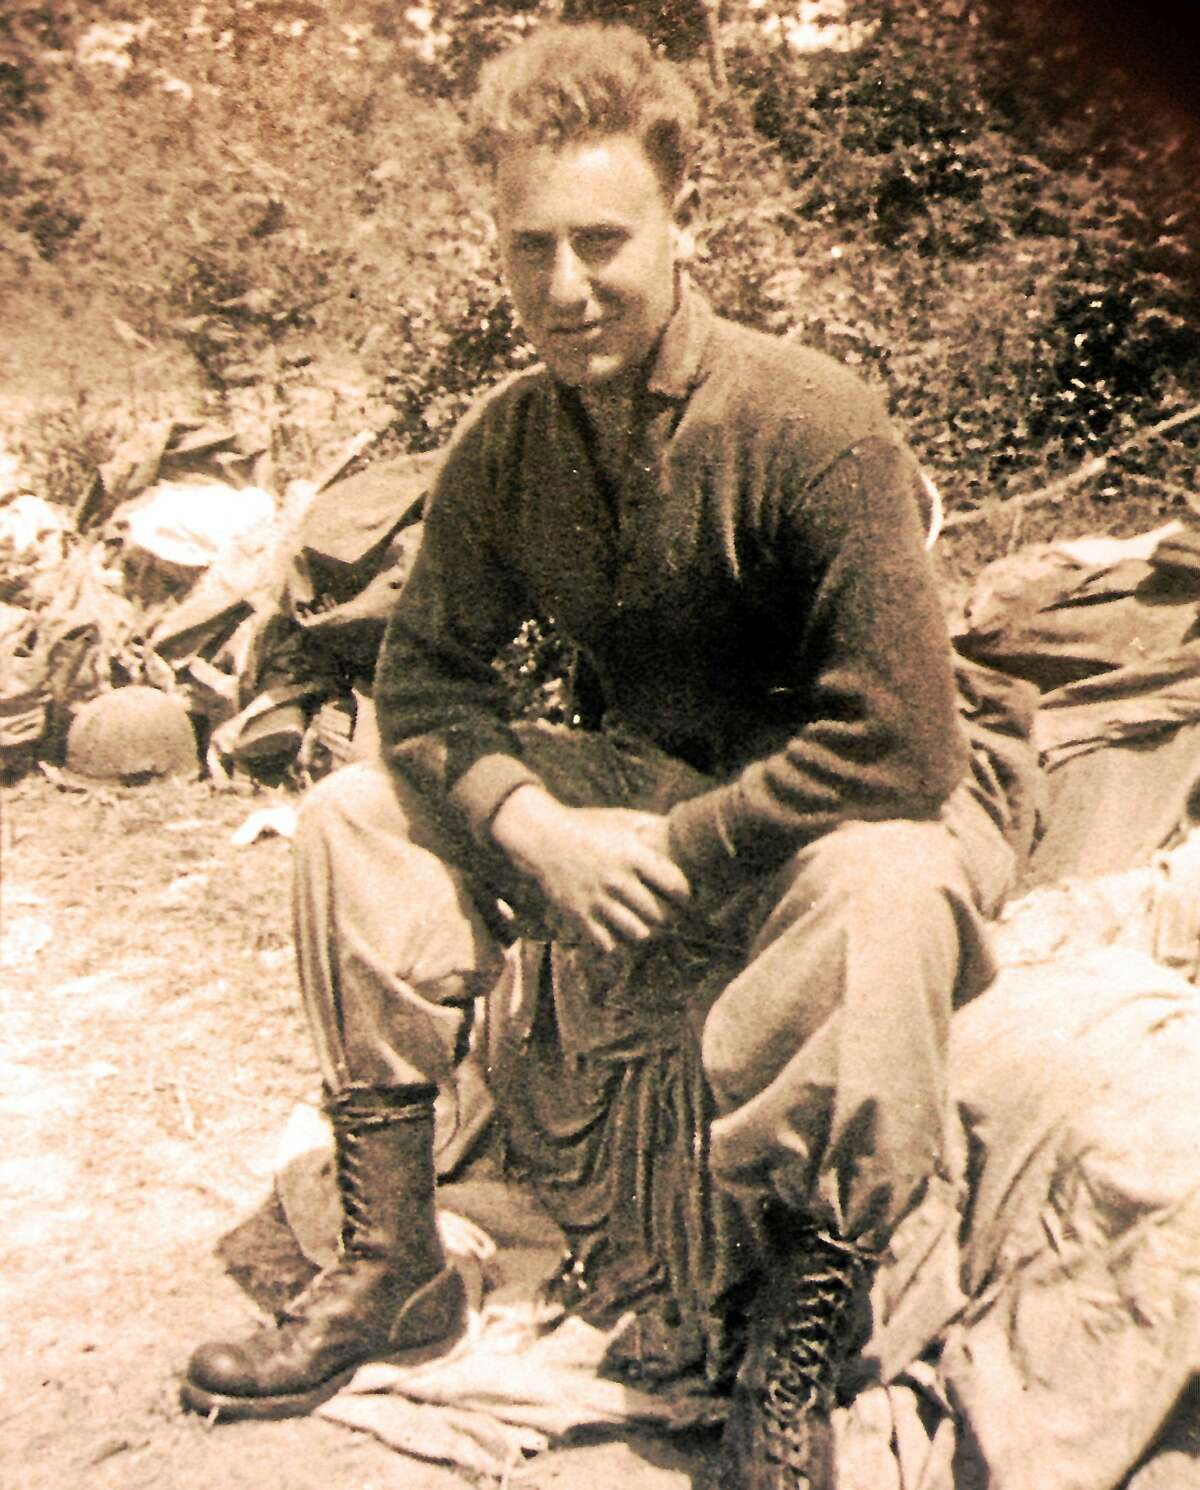 Historian Phil Devlin will offer a digital presentation about the short life of the young Connecticut WWII veteran Melvin Baron, shown here, at the Hadlyme Congregational Church on Nov. 8.